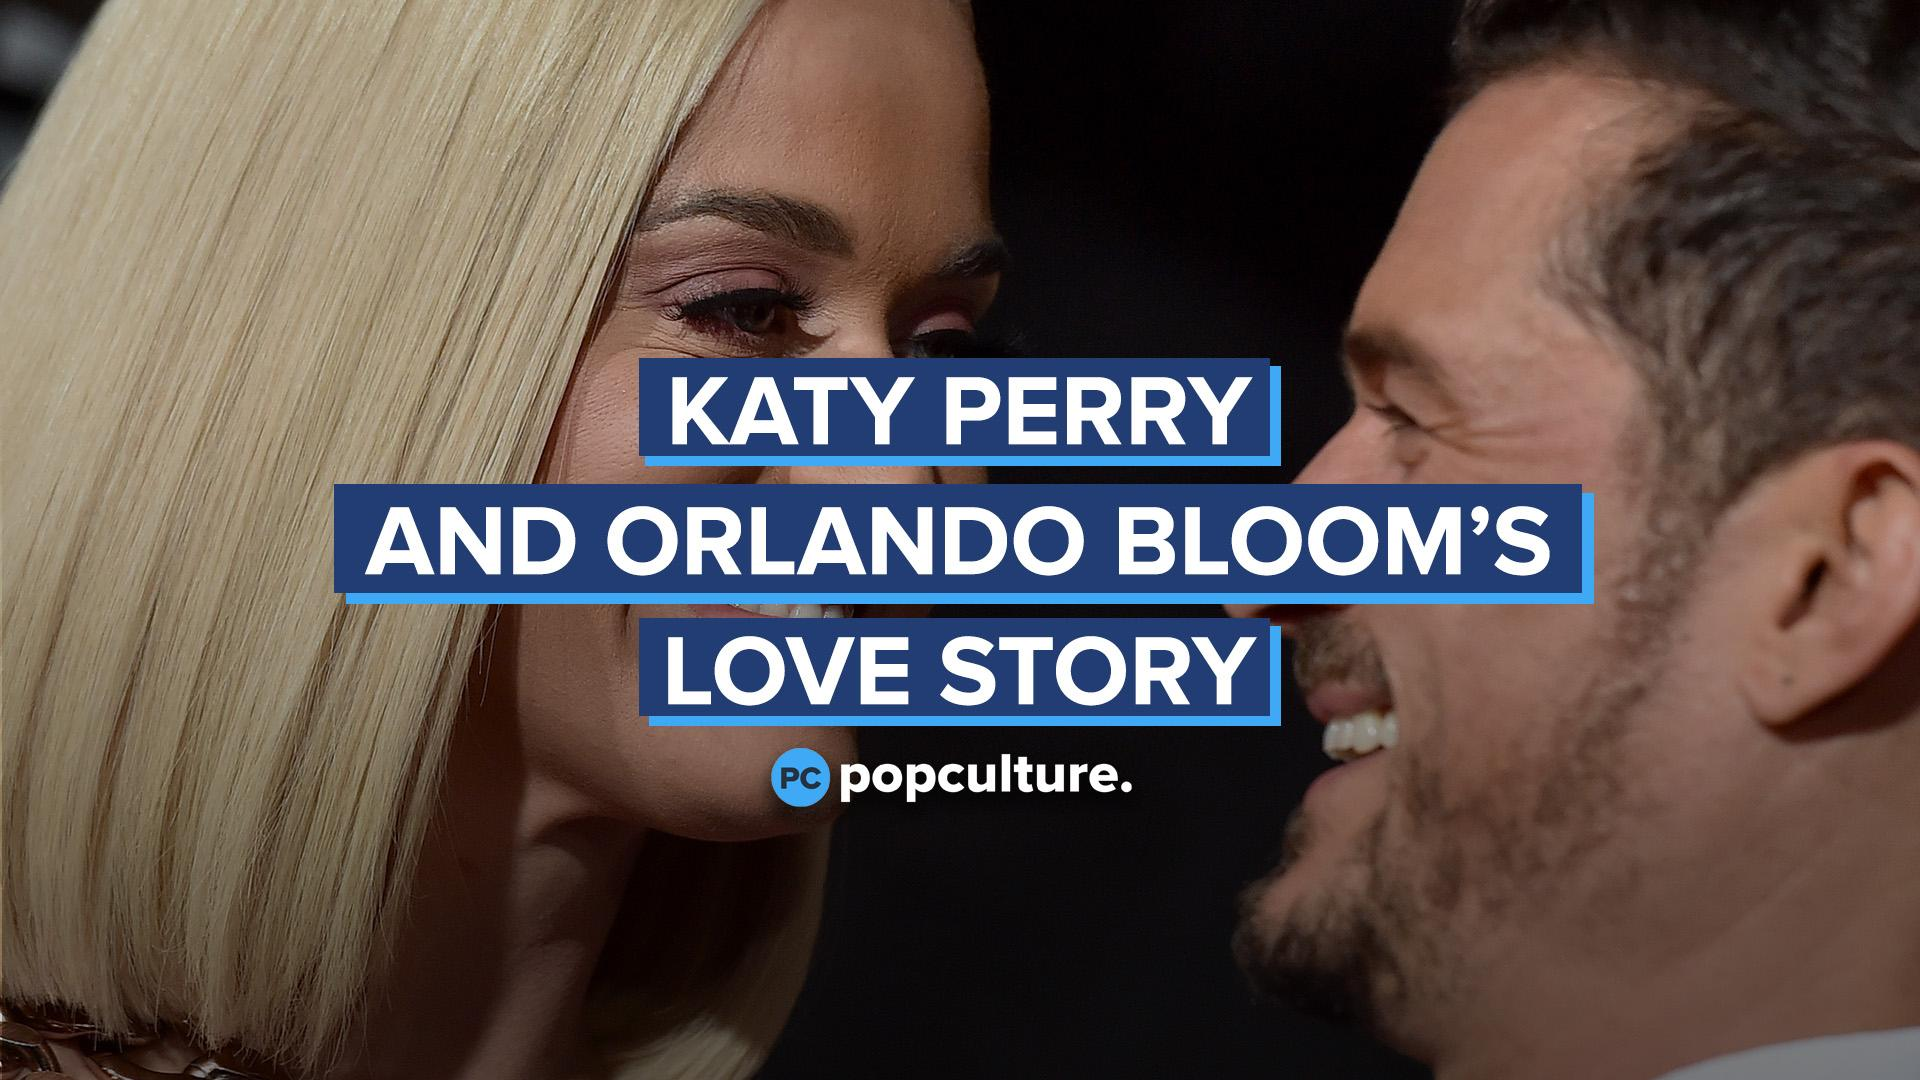 Katy Perry and Orlando Bloom's Love Story screen capture